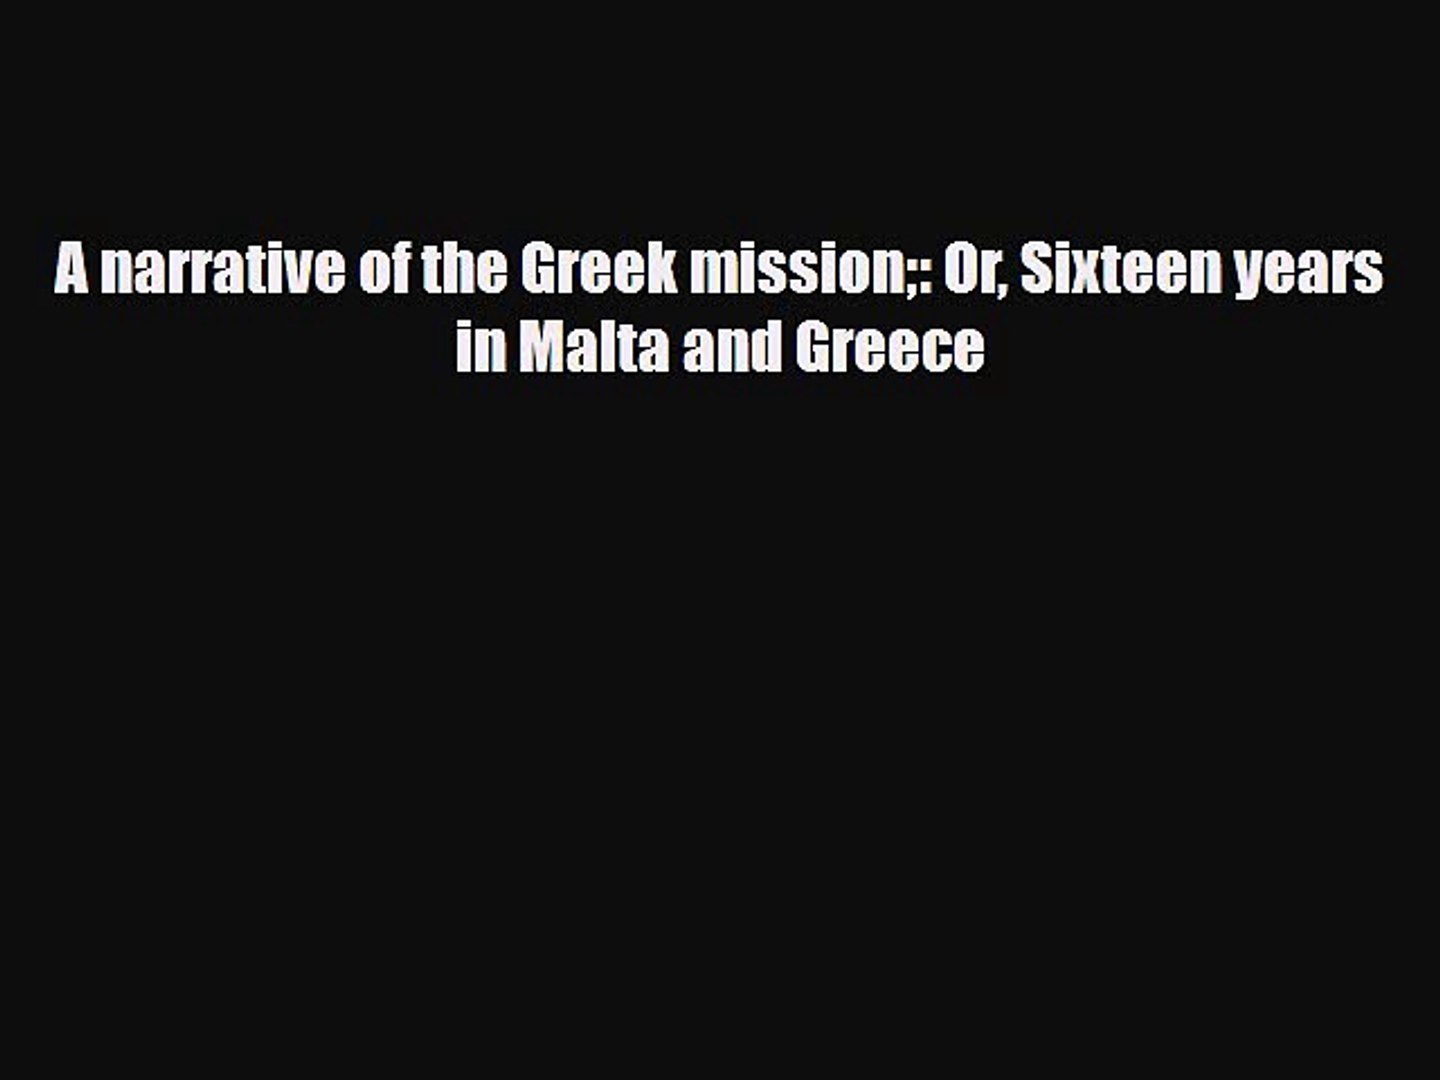 PDF A narrative of the Greek mission: Or Sixteen years in Malta and Greece Read Online